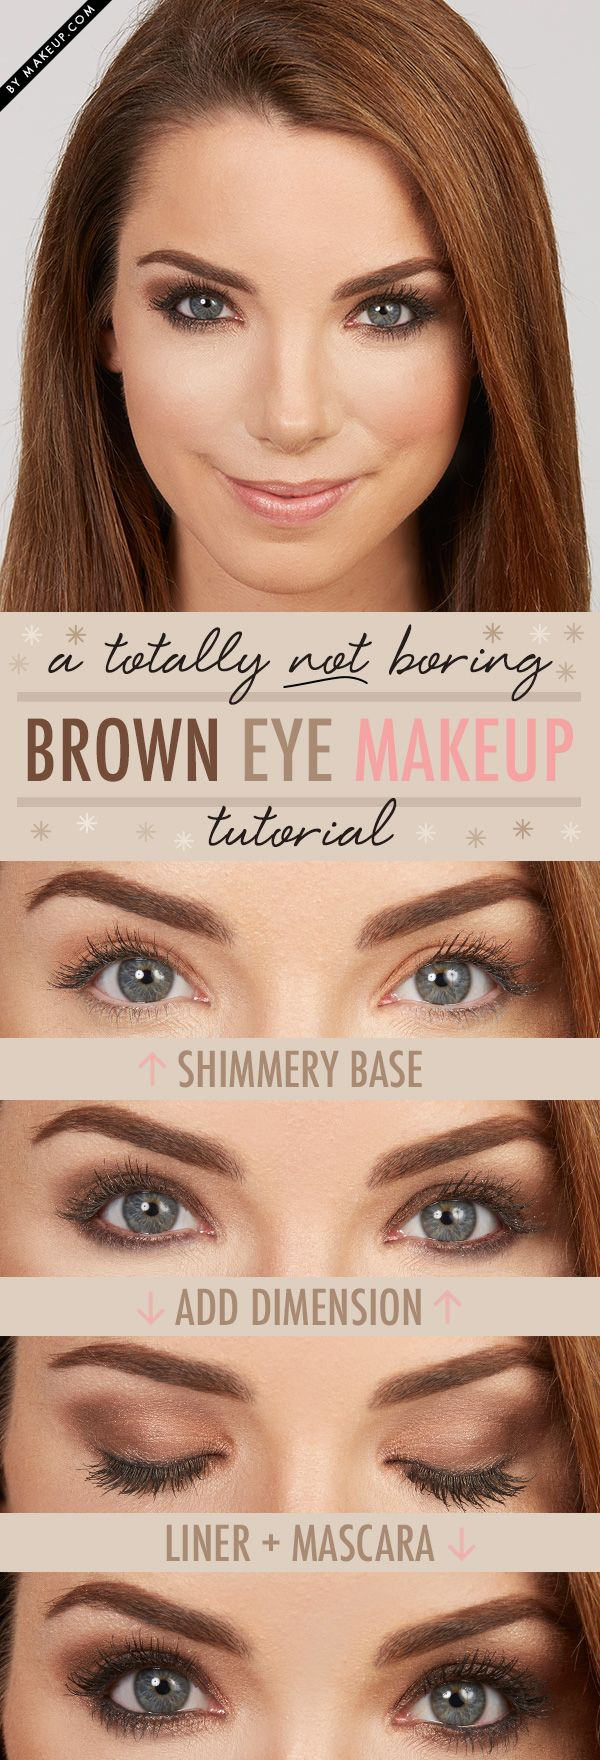 Brown Eye Makeup Tutorial // #beauty #makeup